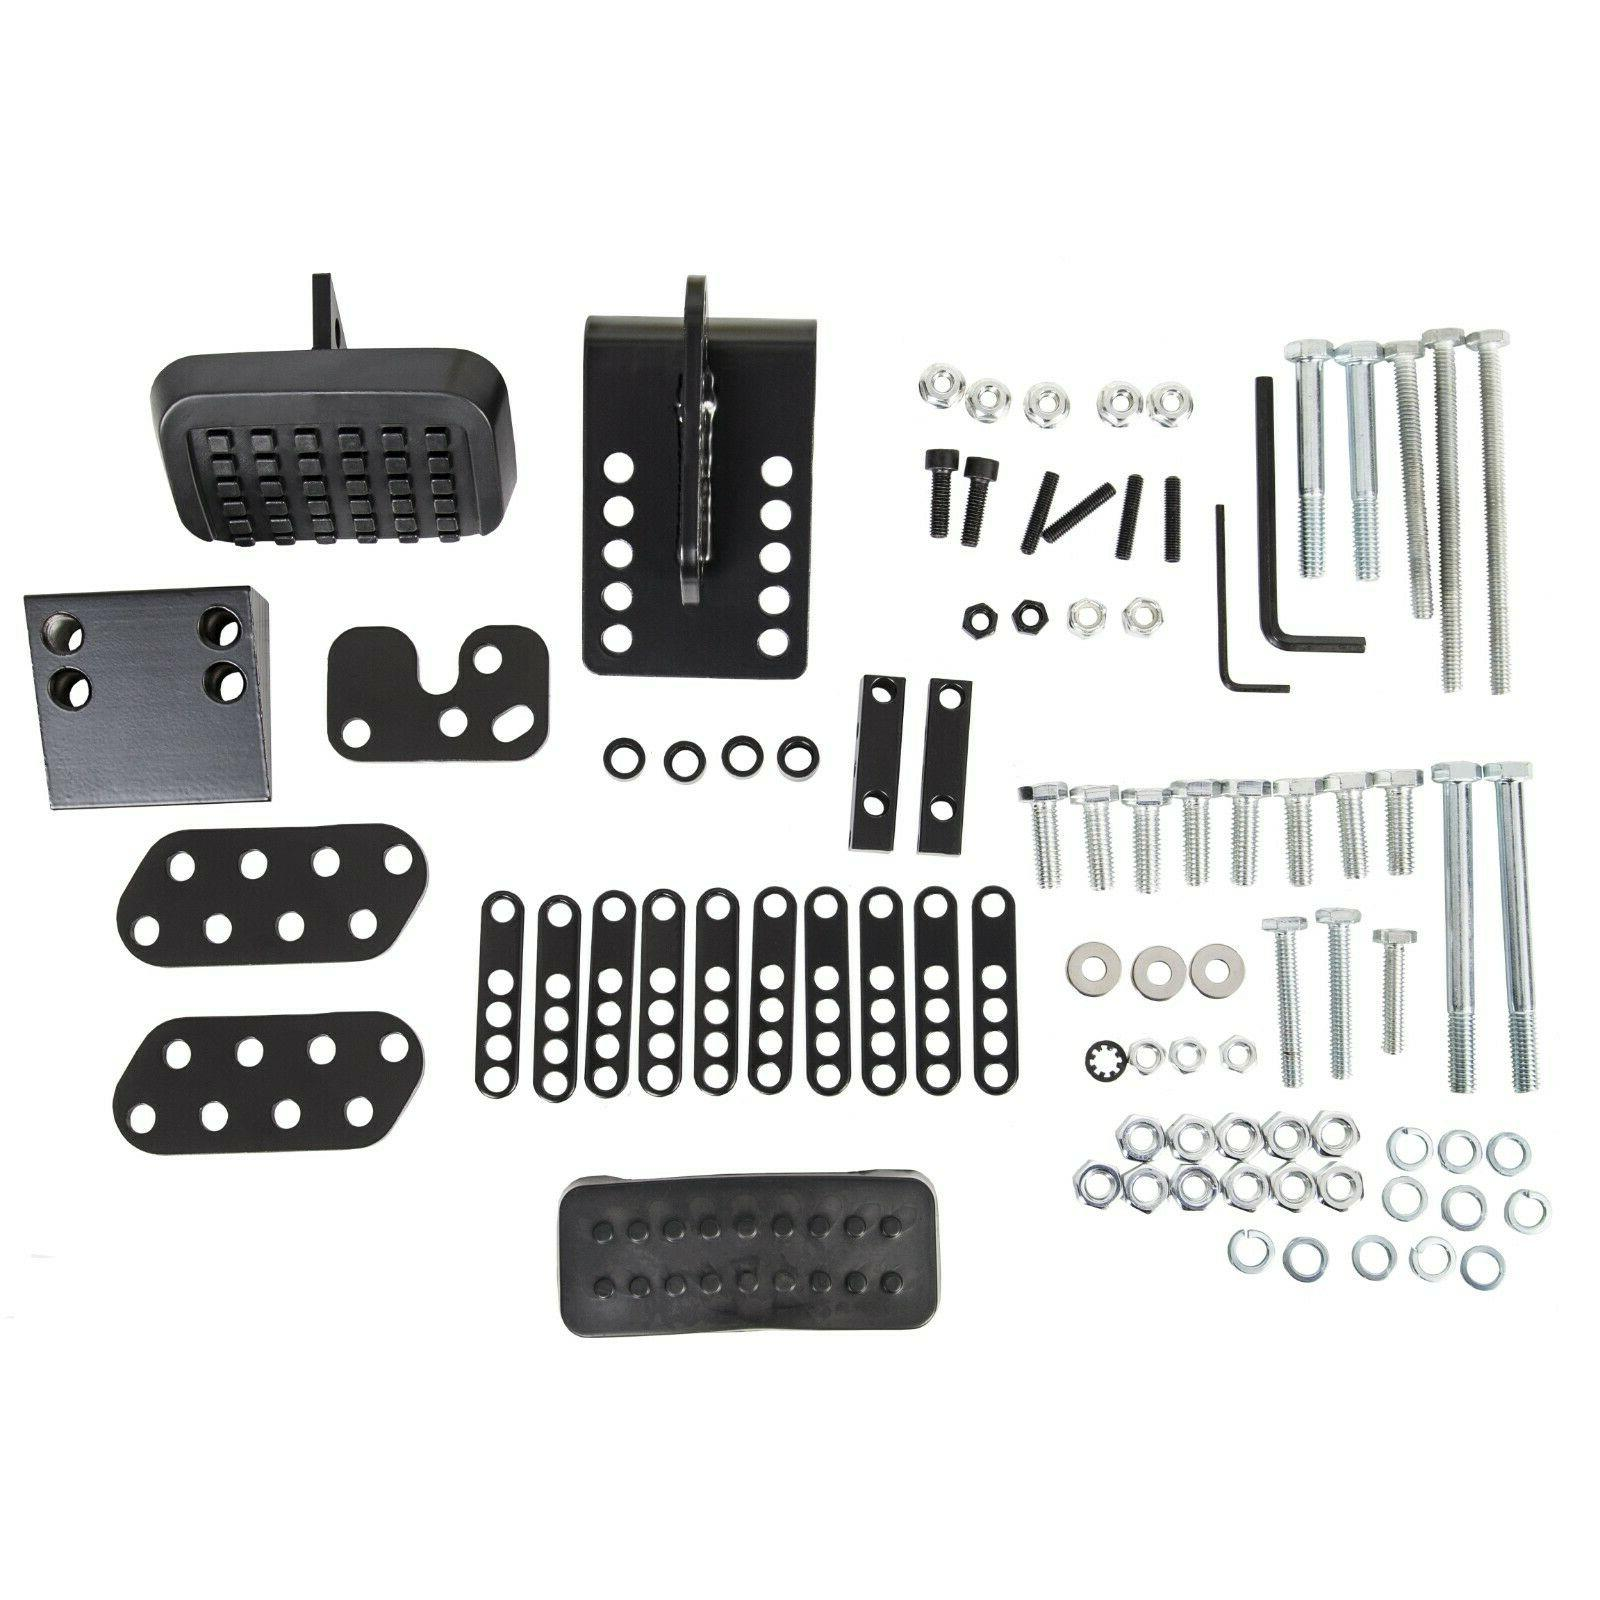 Gas and Pedal Extenders Cars, Kart, Ride